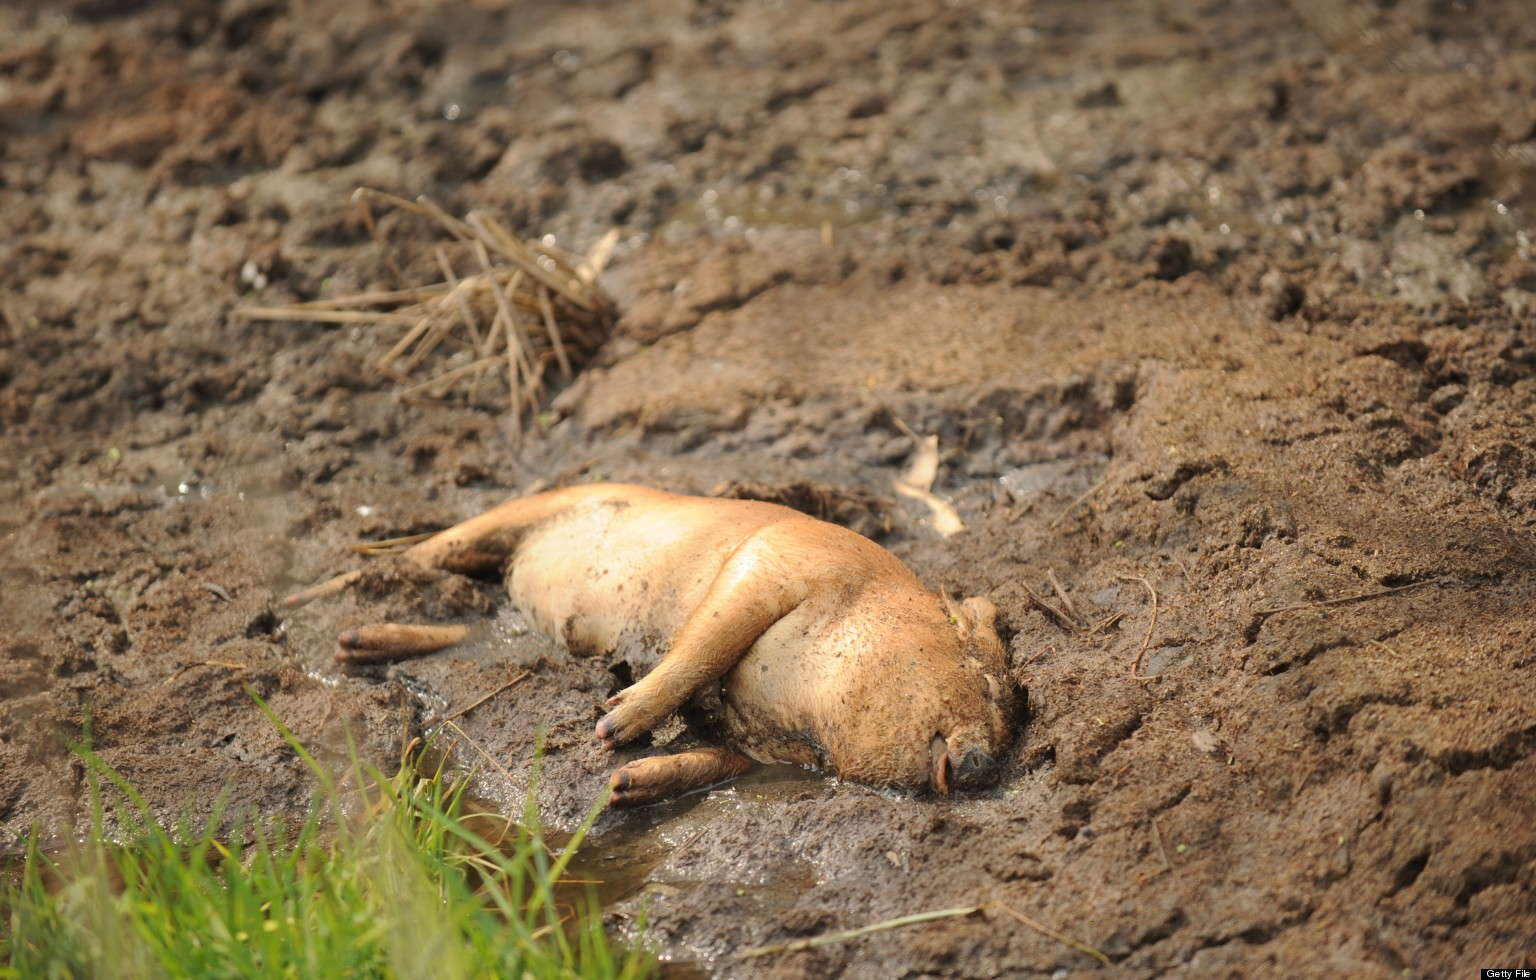 More Dead Animals Found In China